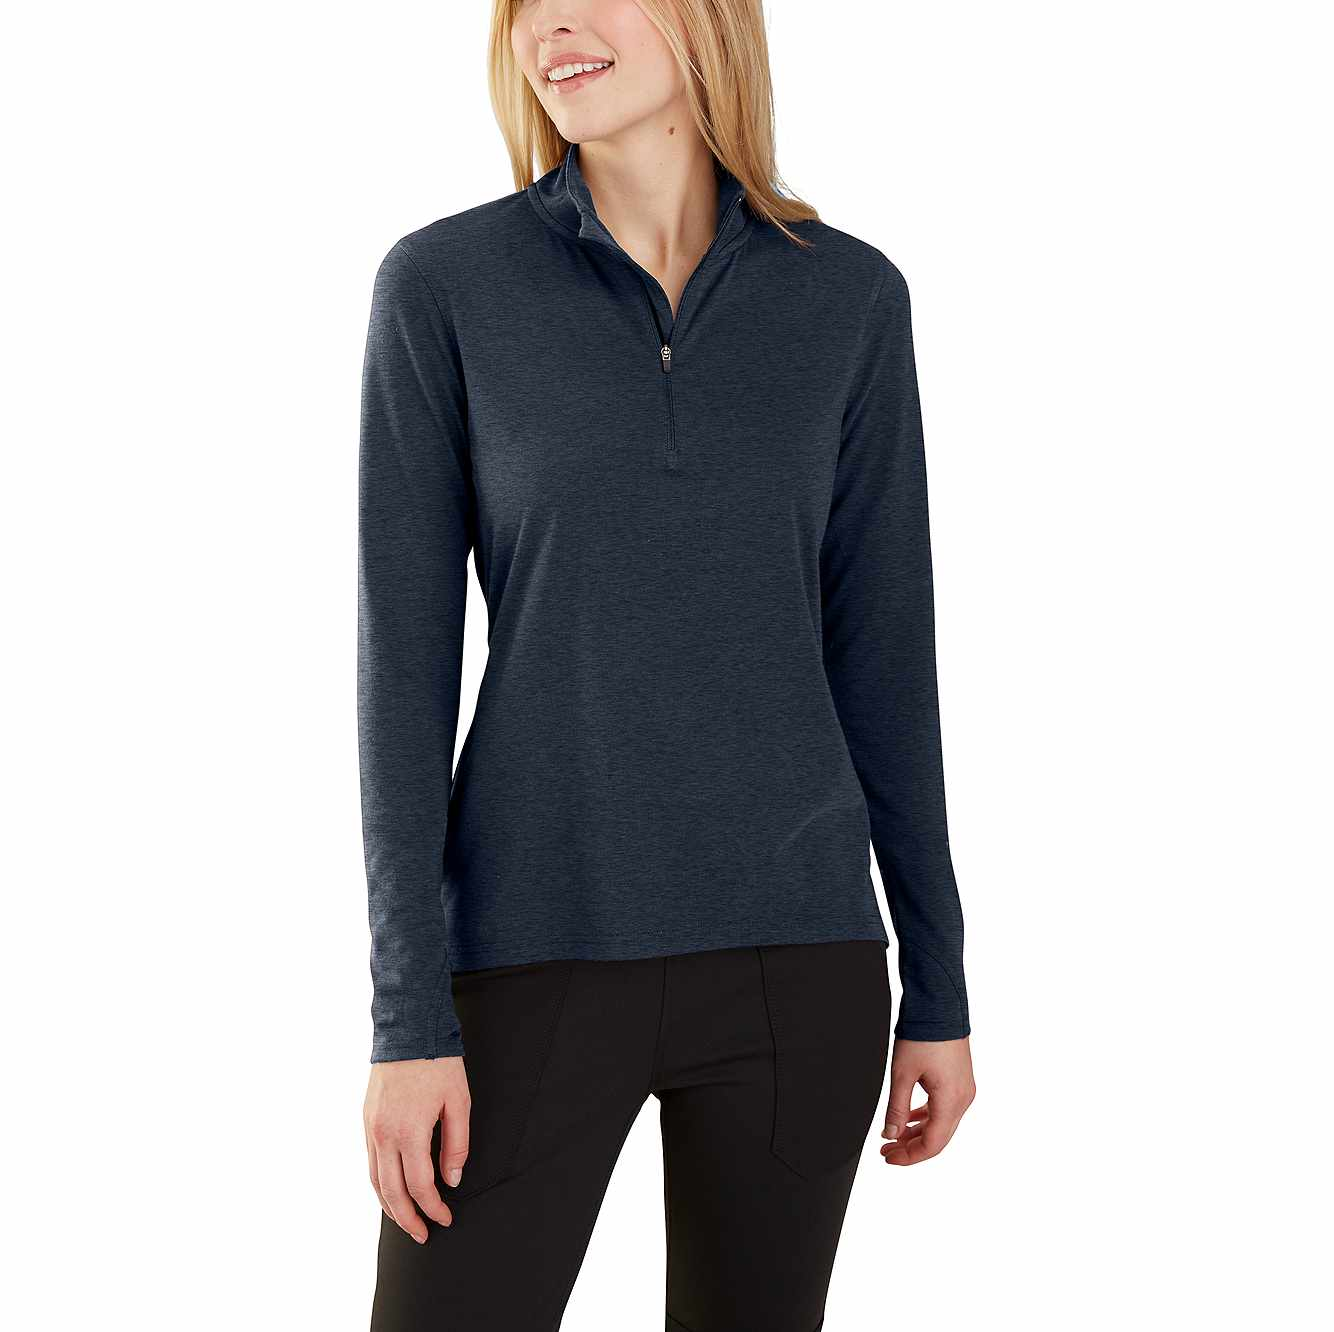 Picture of Carhartt Force® Delmont Quarter-Zip Shirt in Navy Heather